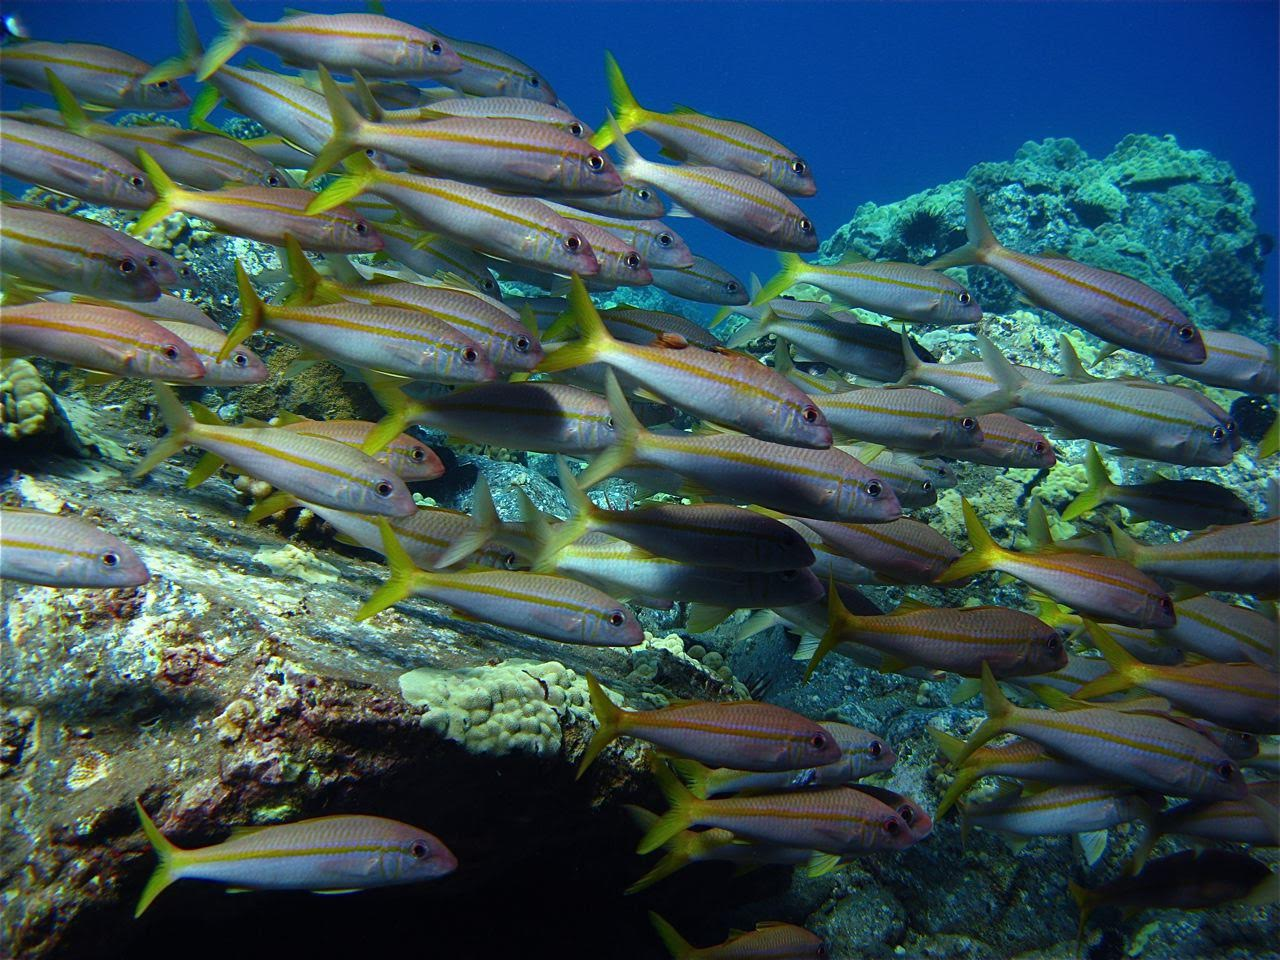 Molokini Crater Backwall – Yellowfin Goatfish